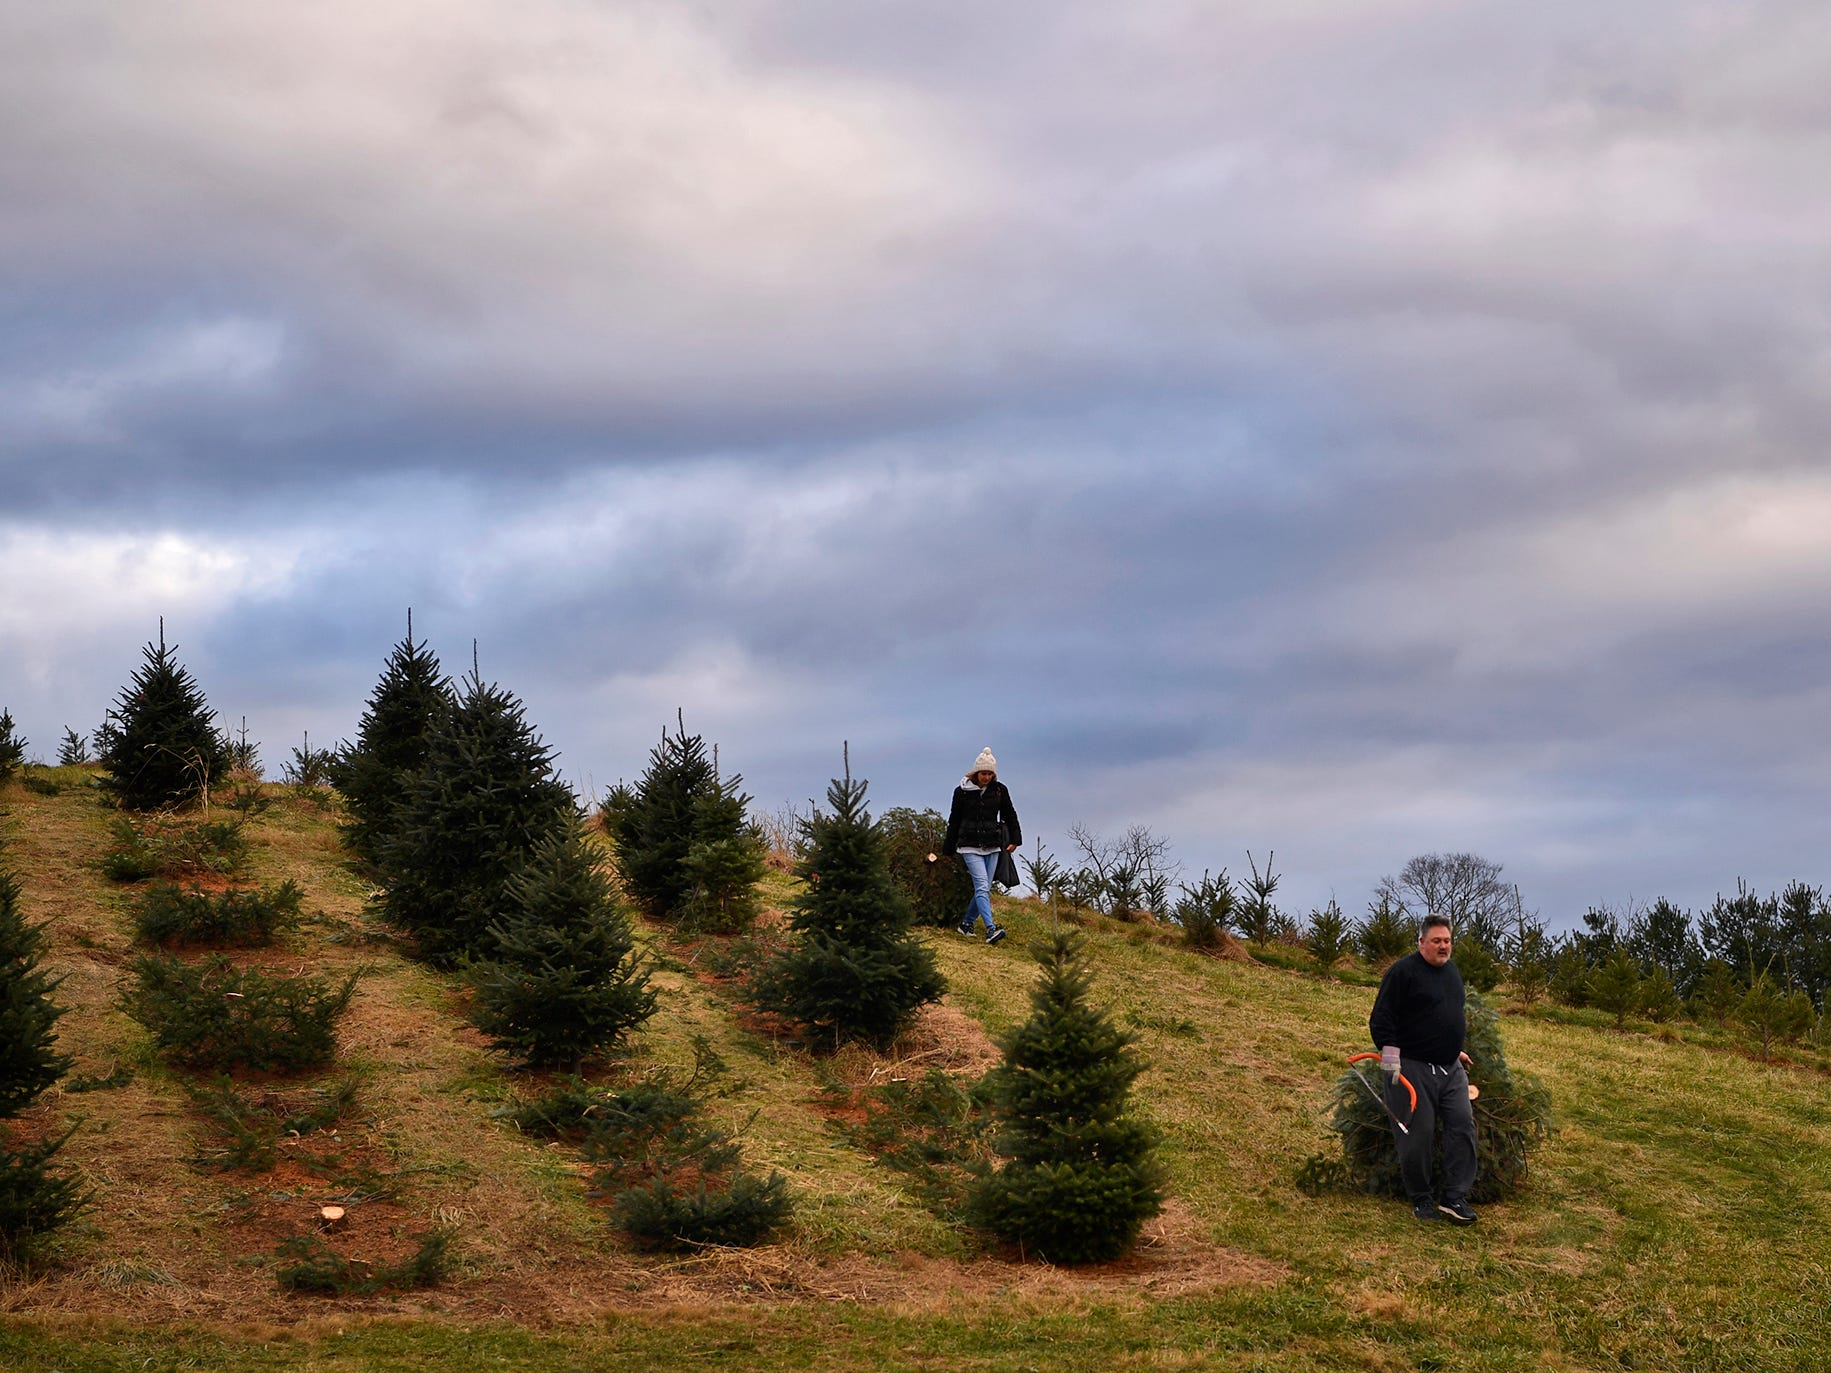 Families search McCurdy's Tree Farm in Dillsburg for the perfect Christmas tree, Monday, December 3, 2018. 